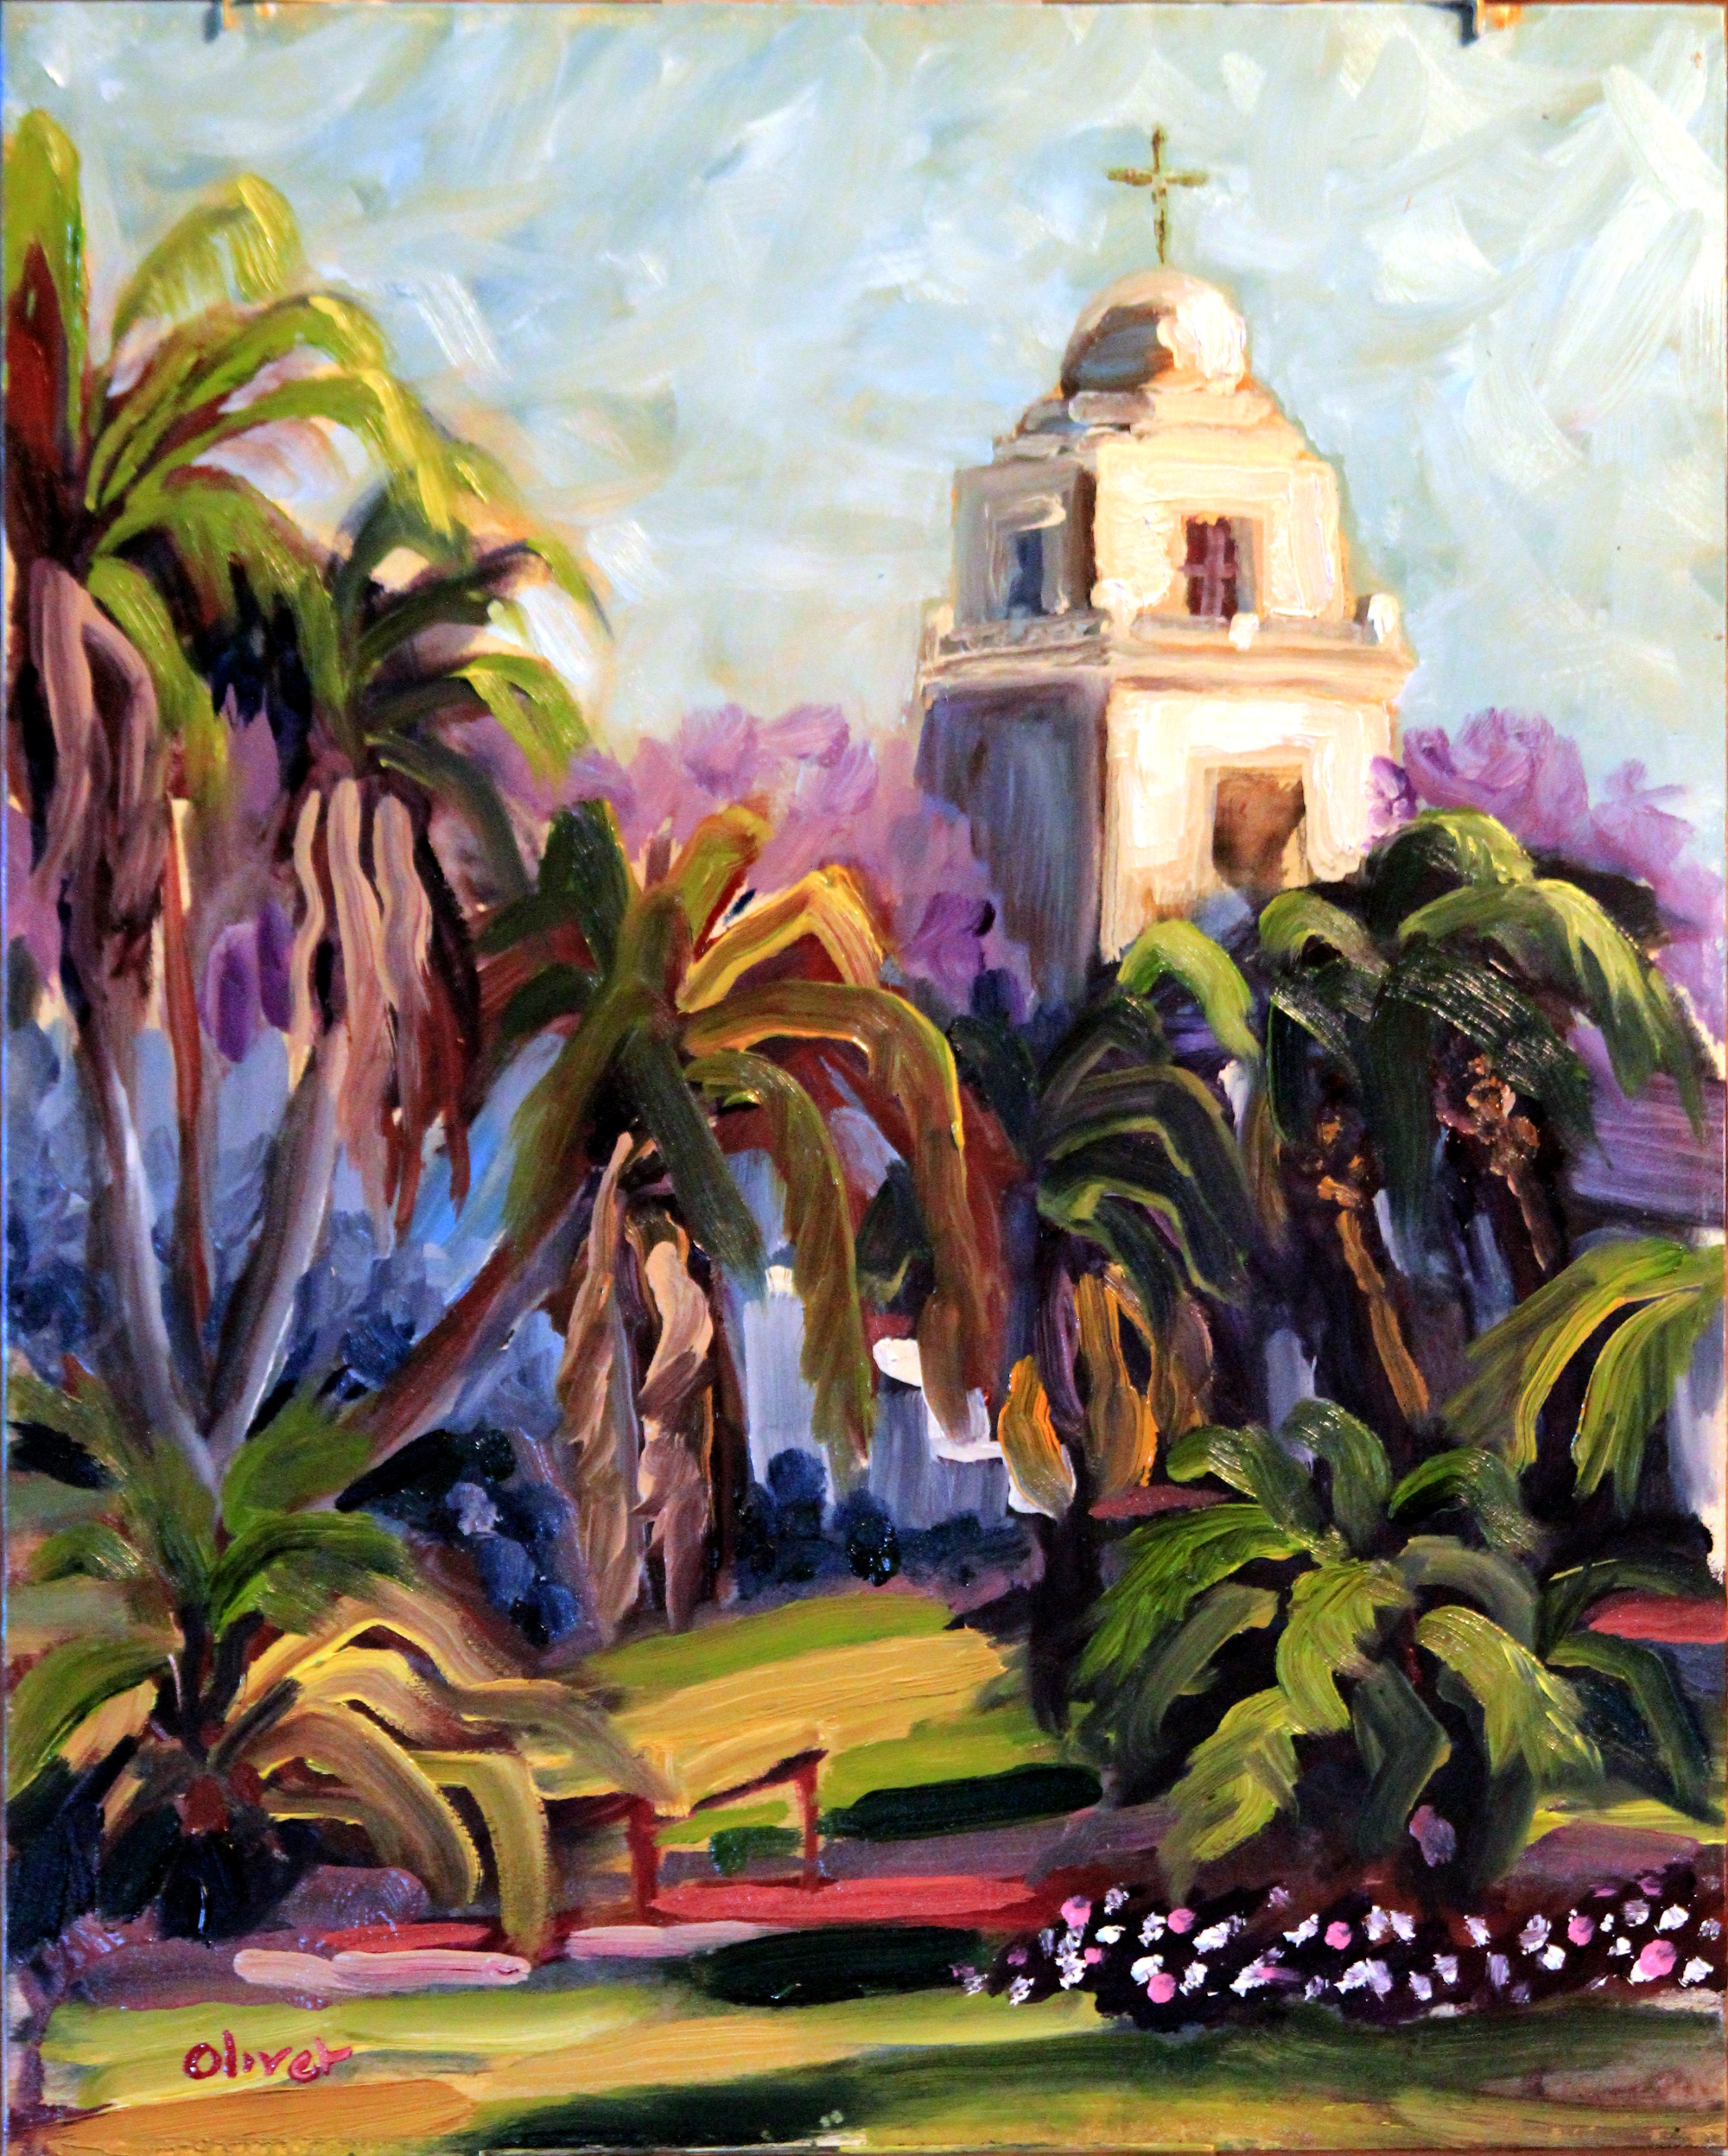 original oil painting, San Diego plein air, Presidio Park, artist, Ronald Lee Oliver